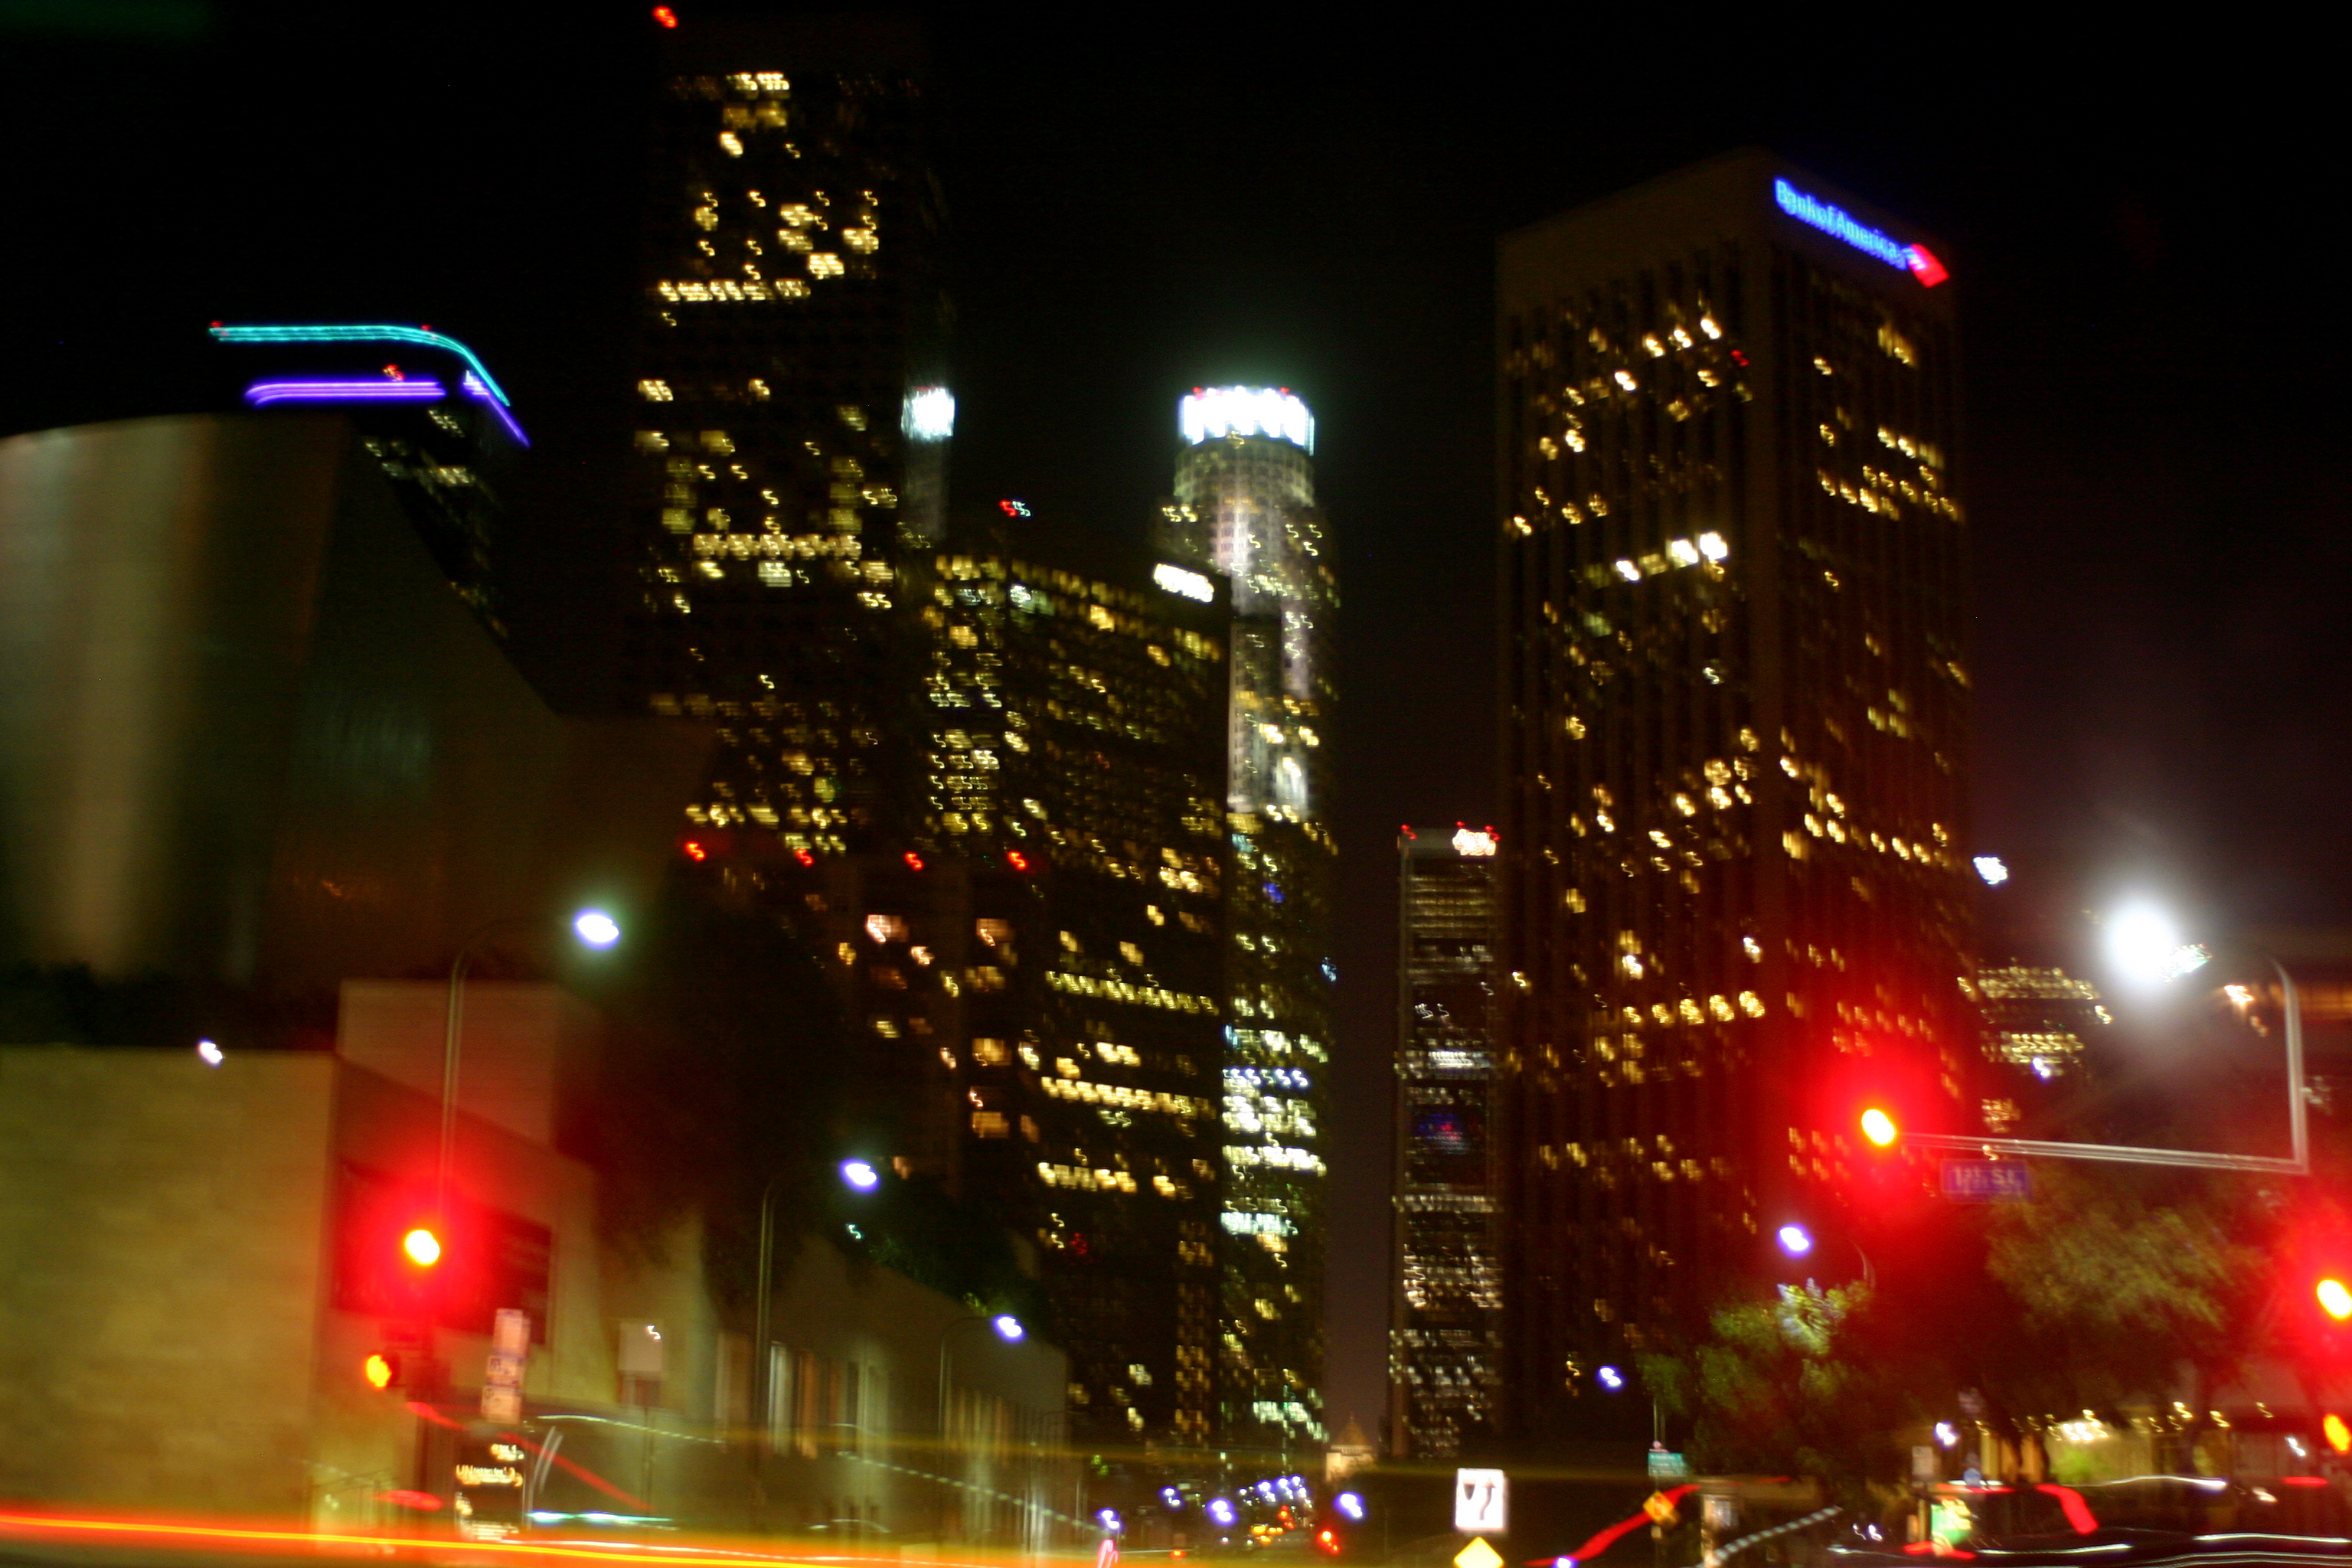 Downtown L.A. at Night